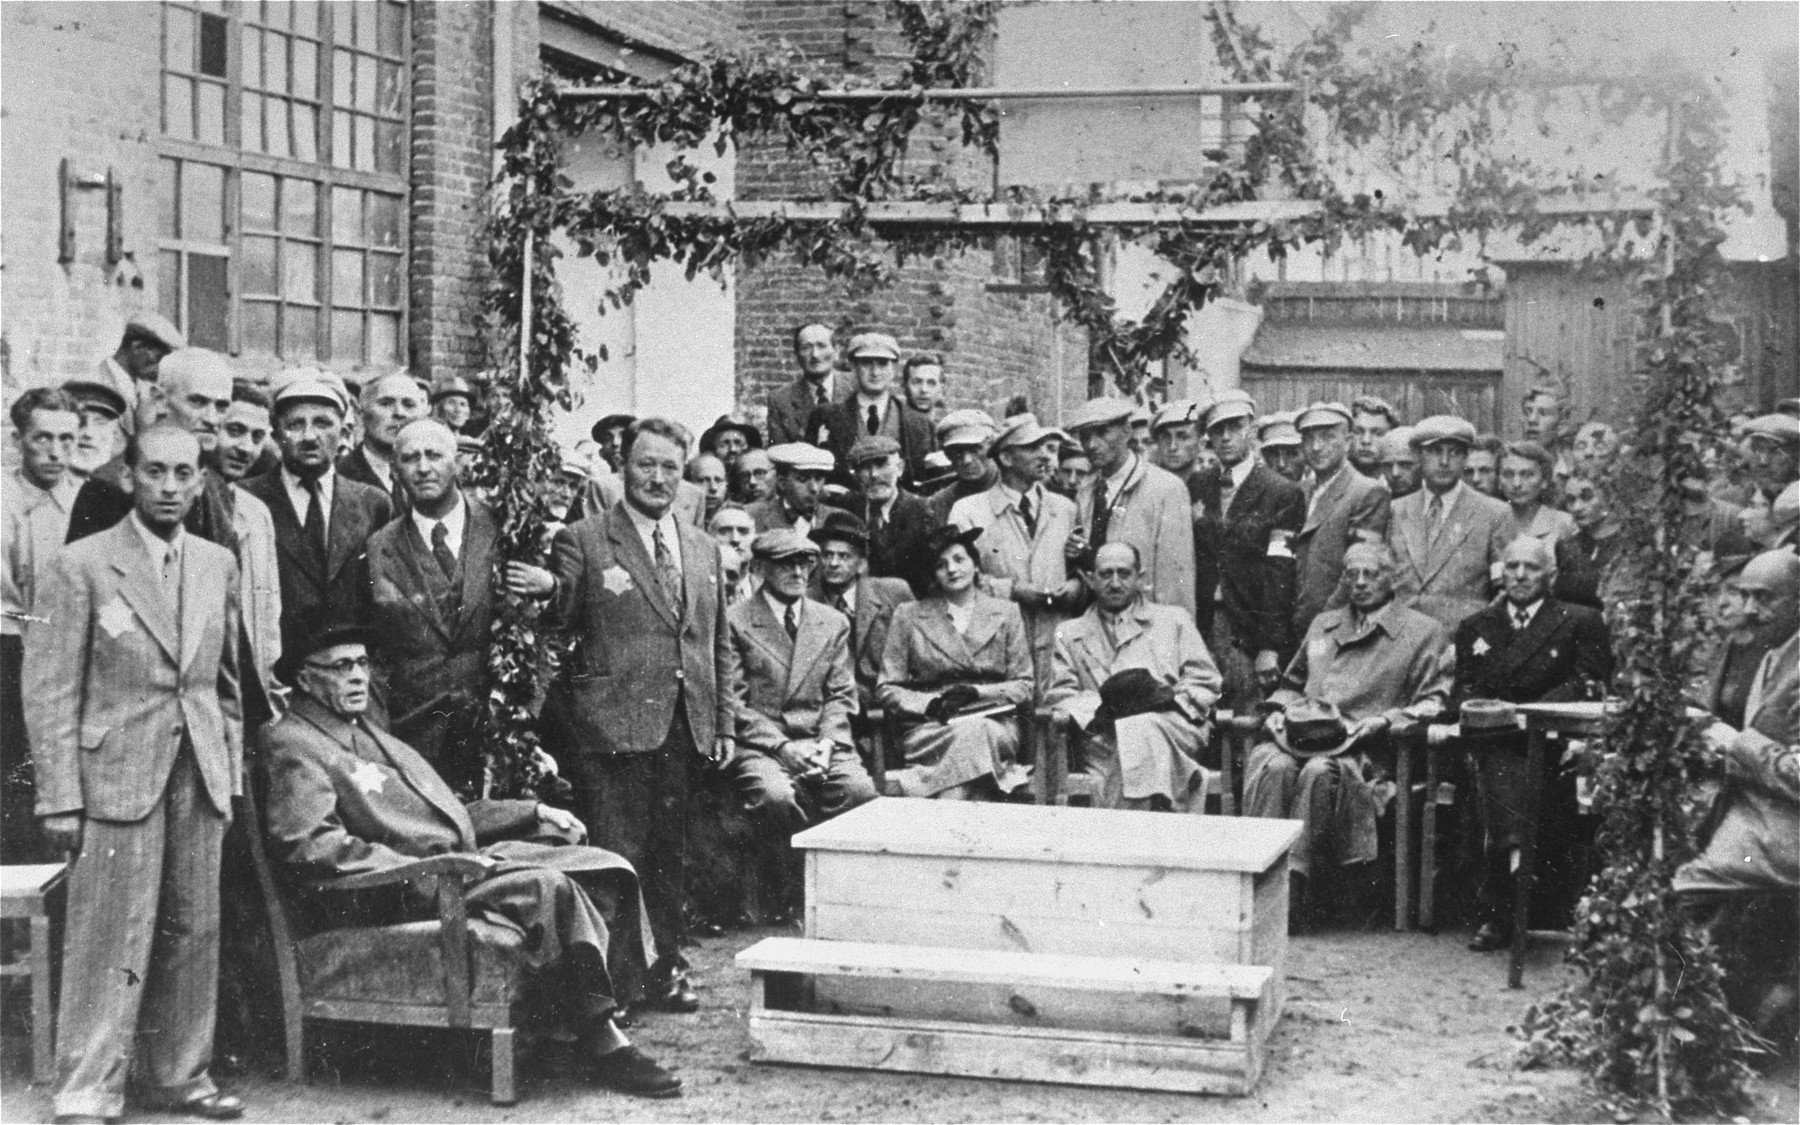 Mordechai Chaim Rumkowski (seated at the left) attends a public ceremony in the Lodz ghetto.  Among those pictured are: Baruch Praszker (standing behind Rumkowski), Stefania Dawidowicz (seated in the center, wearing a hat), Dr. Leon Szykier (seated next to Dawidowicz), Jozef Rumkowski (seated next to Szykier), Leon Rozenblat (far right).  All others are members of the ghetto police.